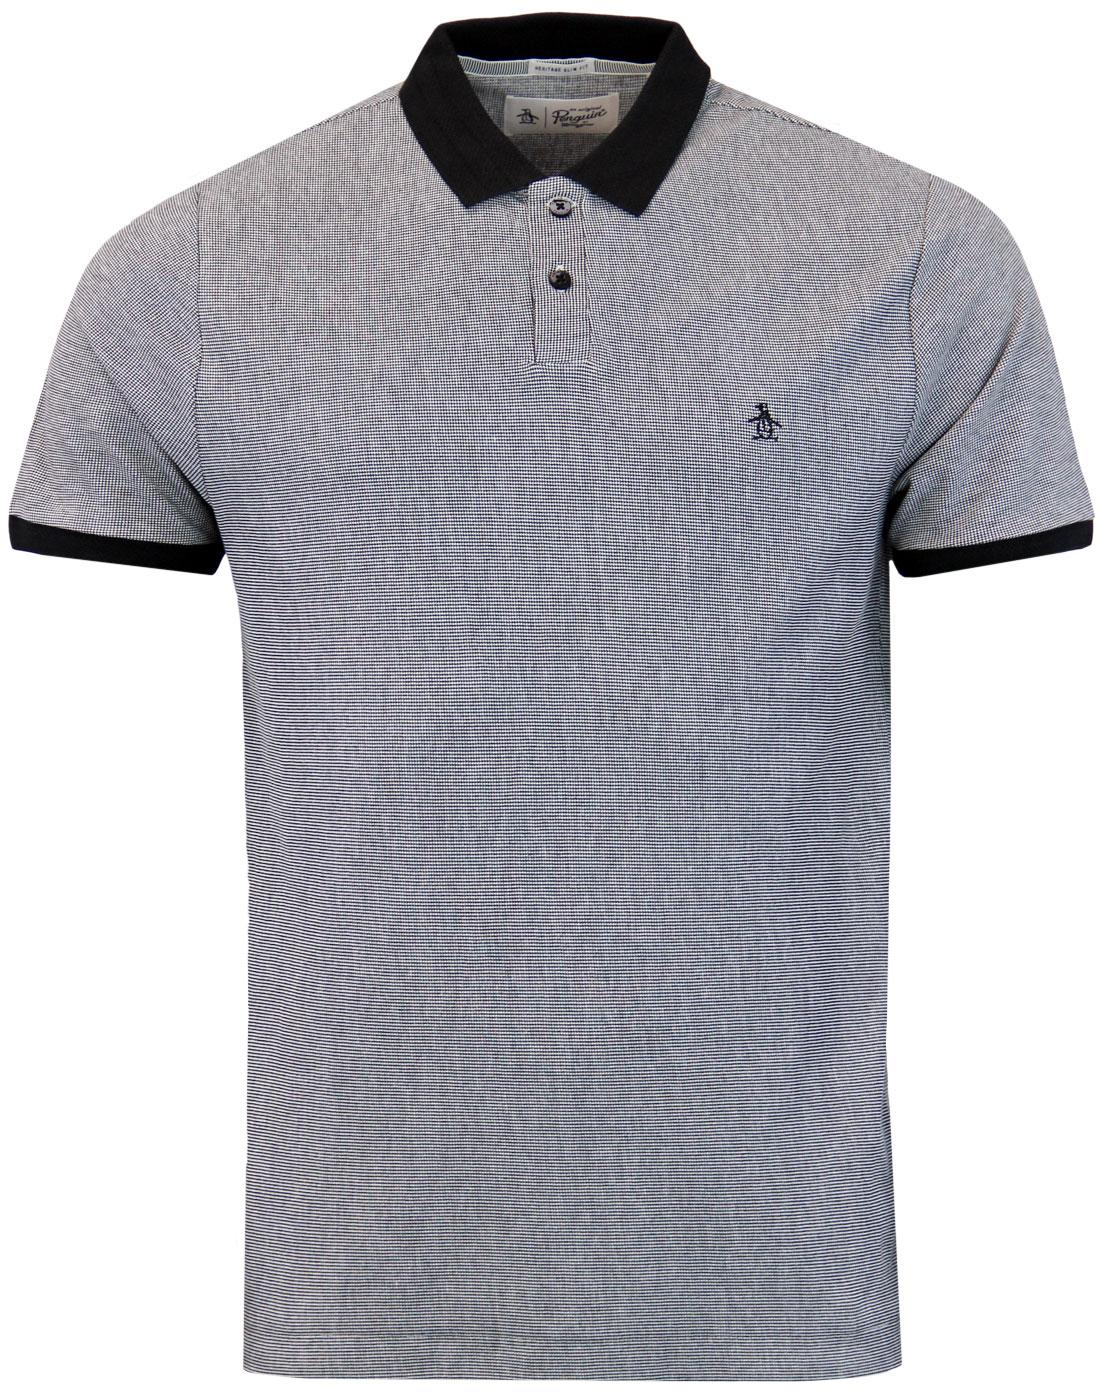 ORIGINAL PENGUIN Retro Mod Birdseye Polo Top (B)